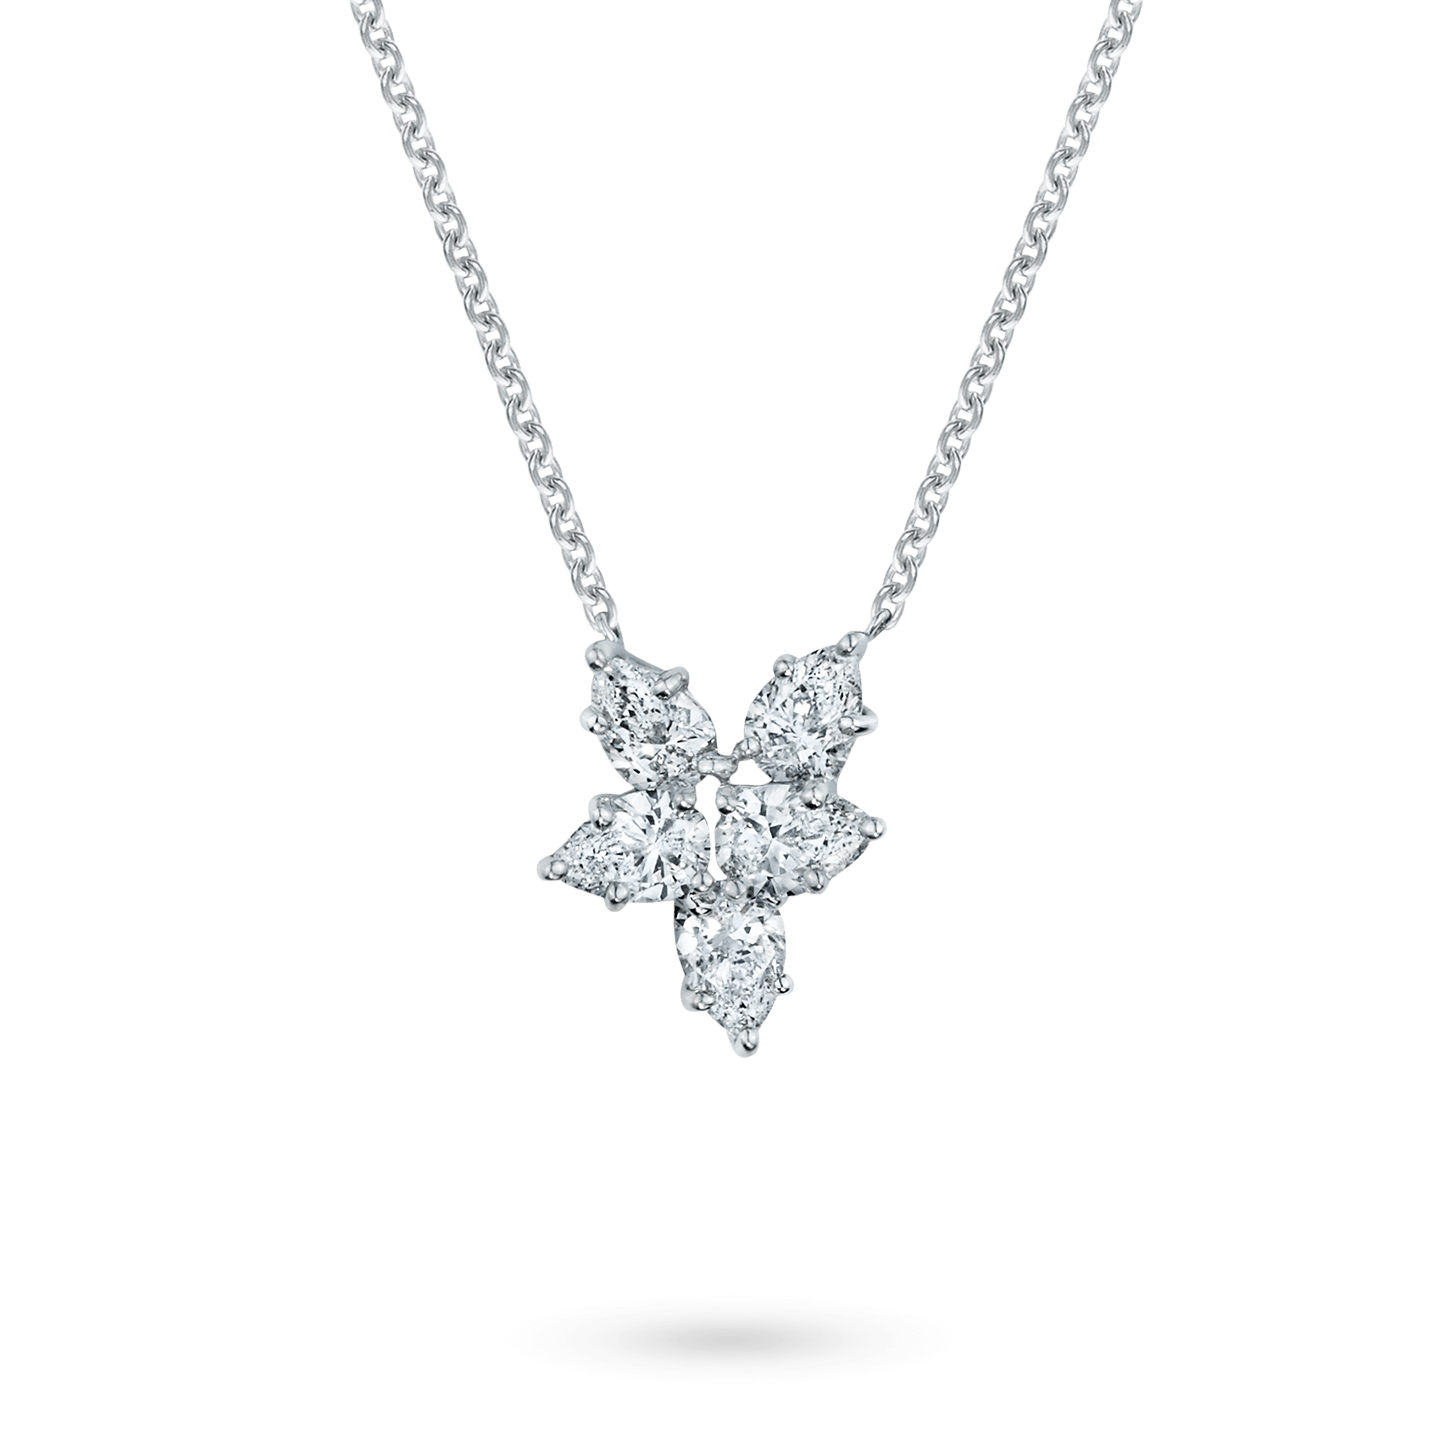 Winston Cluster Small Diamond Pendant, Product Image 1